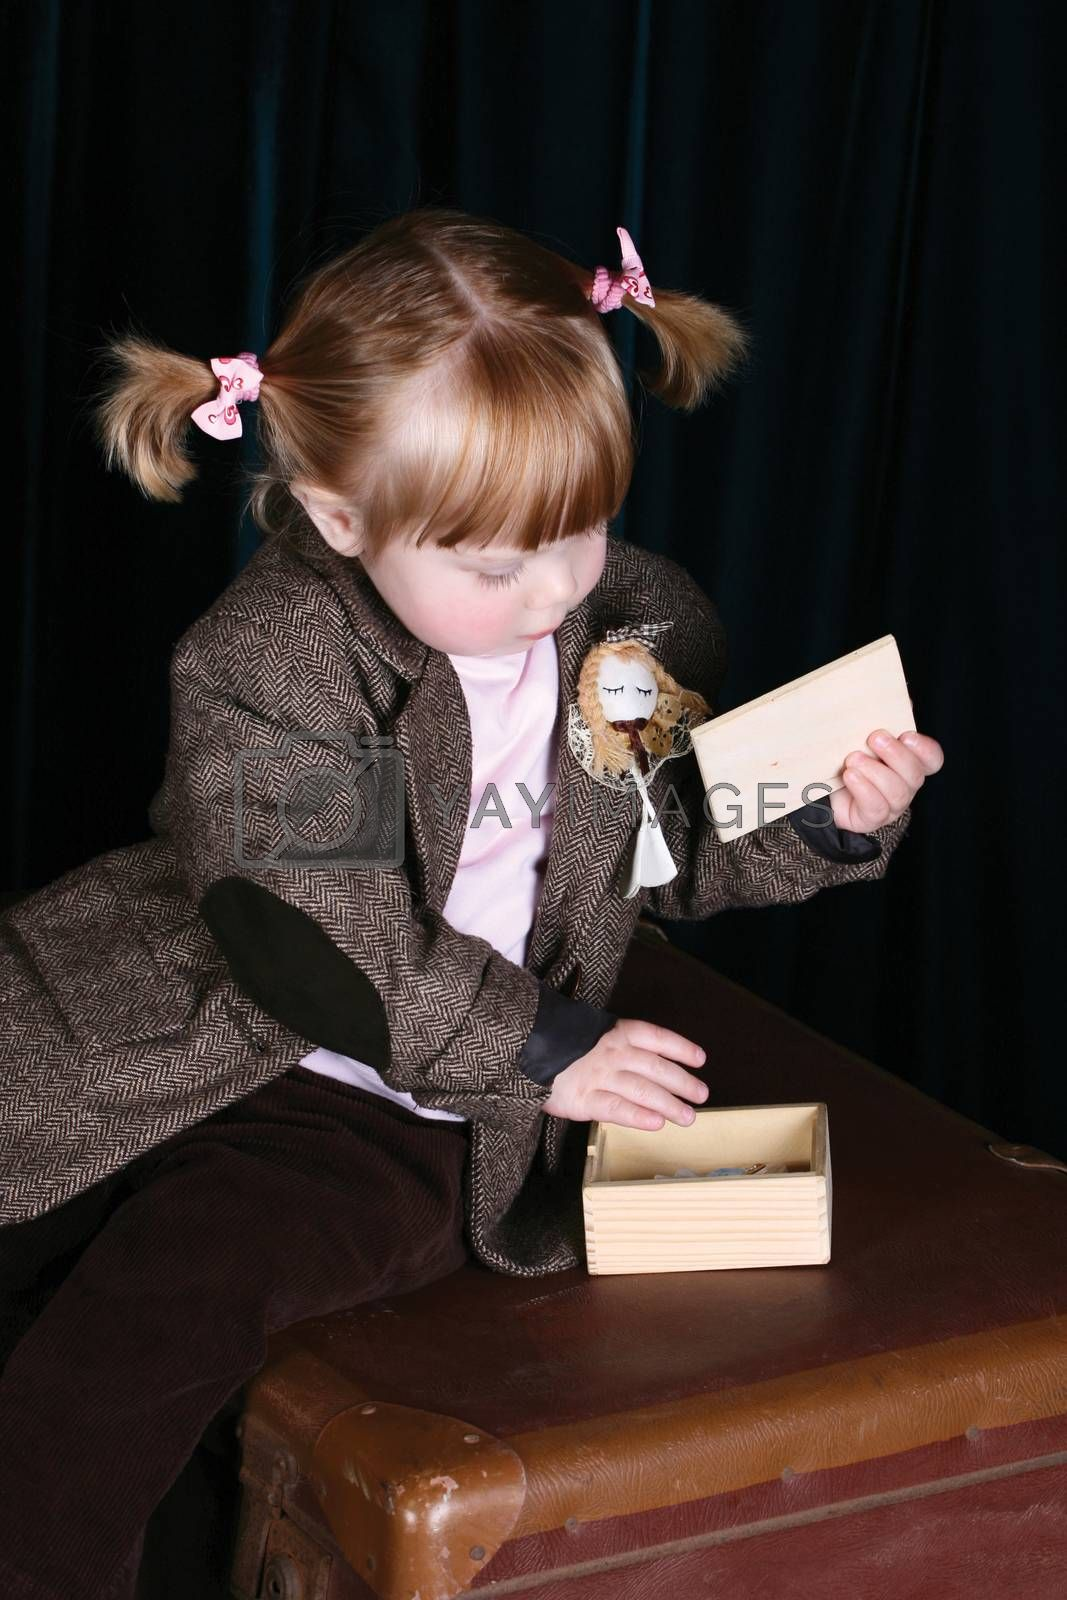 Little girl in vintage attire playing with a puzzle